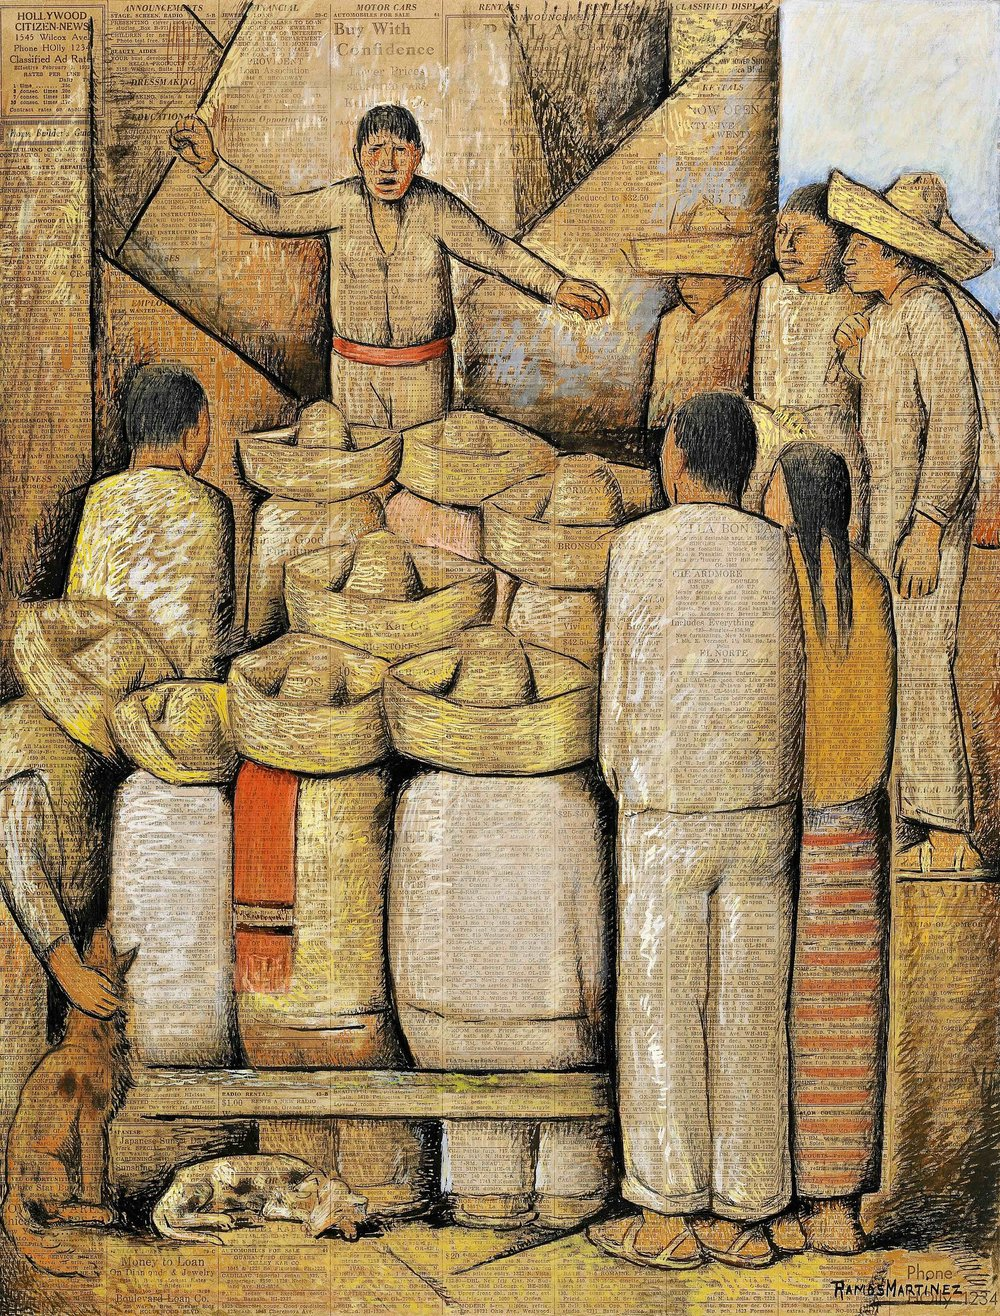 La Reuniòn / The Meeting  1932 tempera, charcoal and pastel on newsprint / temple, carbón y pastel sobre papel periódico (Hollywood Citizen News) 21 x 16 inches / 53.3 x 40.6 centímetros Private collection